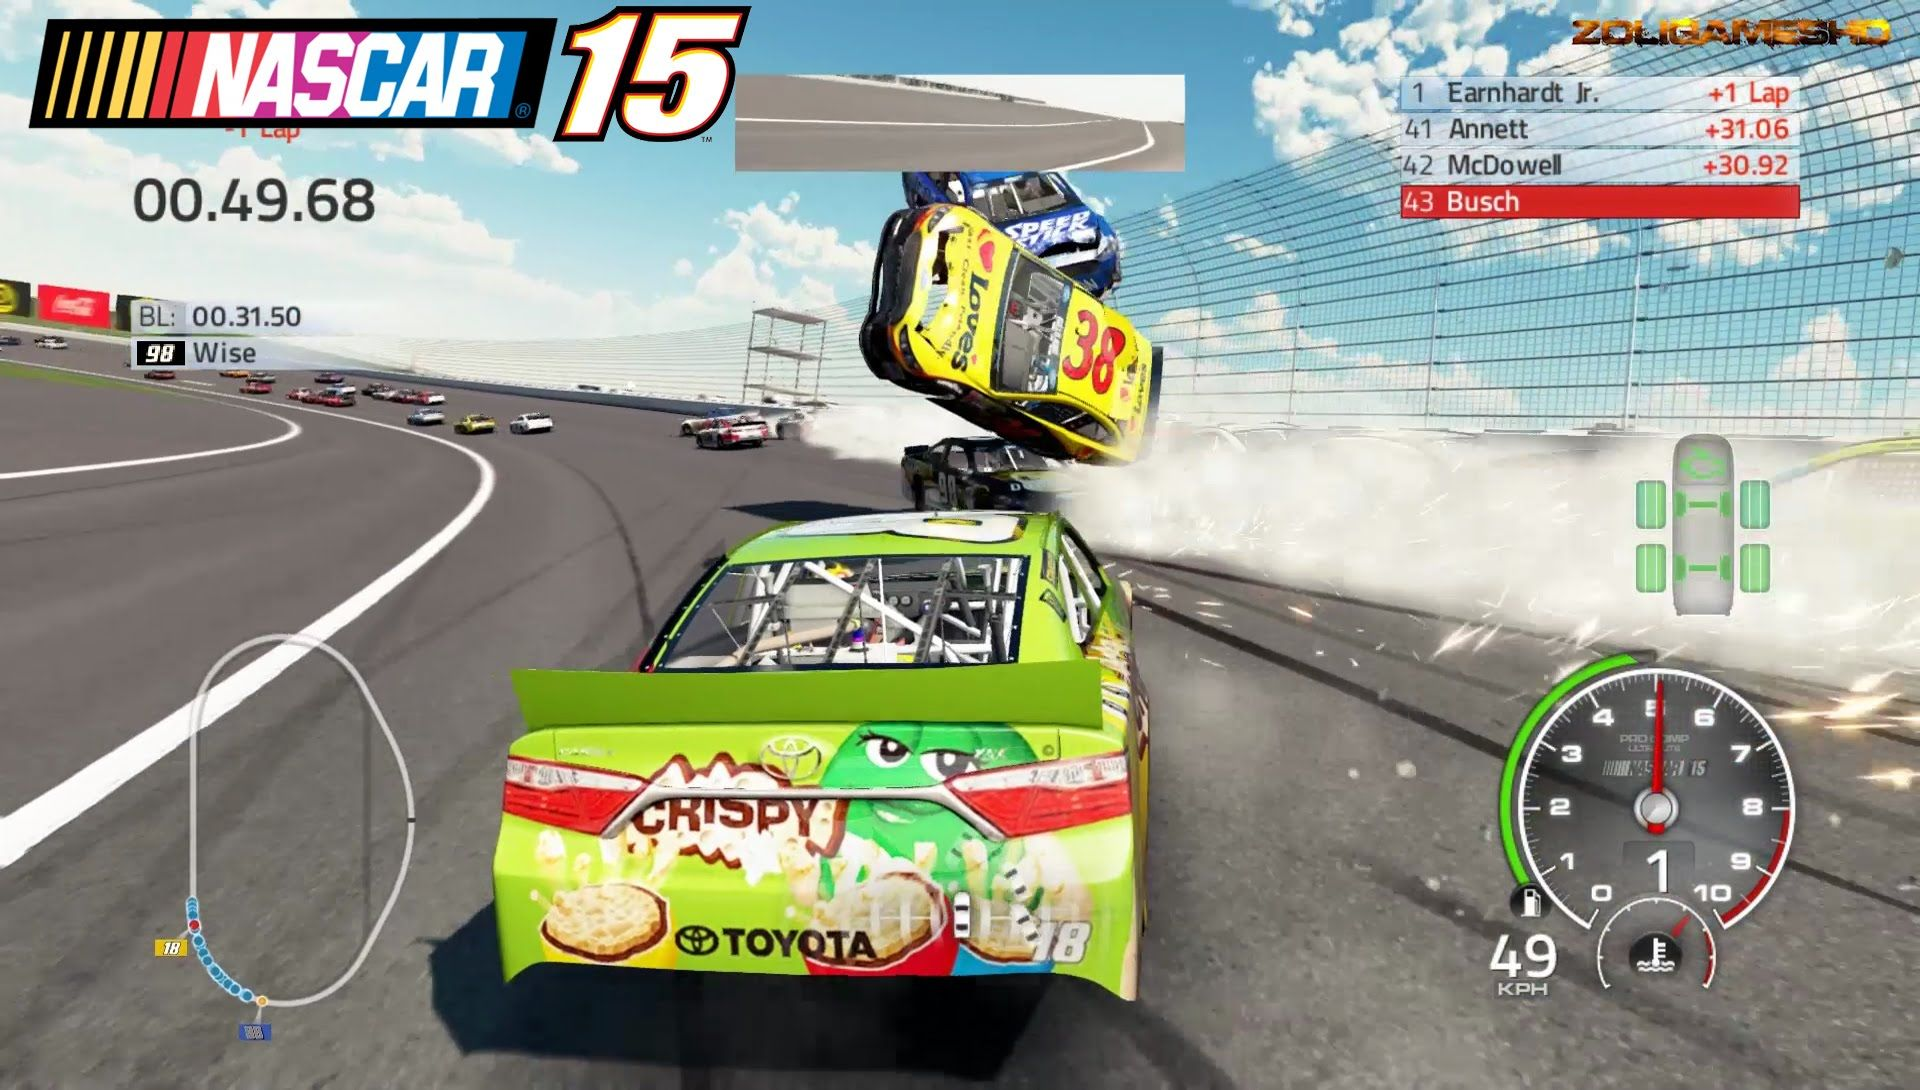 Best Crashes in a Circle Simulator Nascar'15 The Game